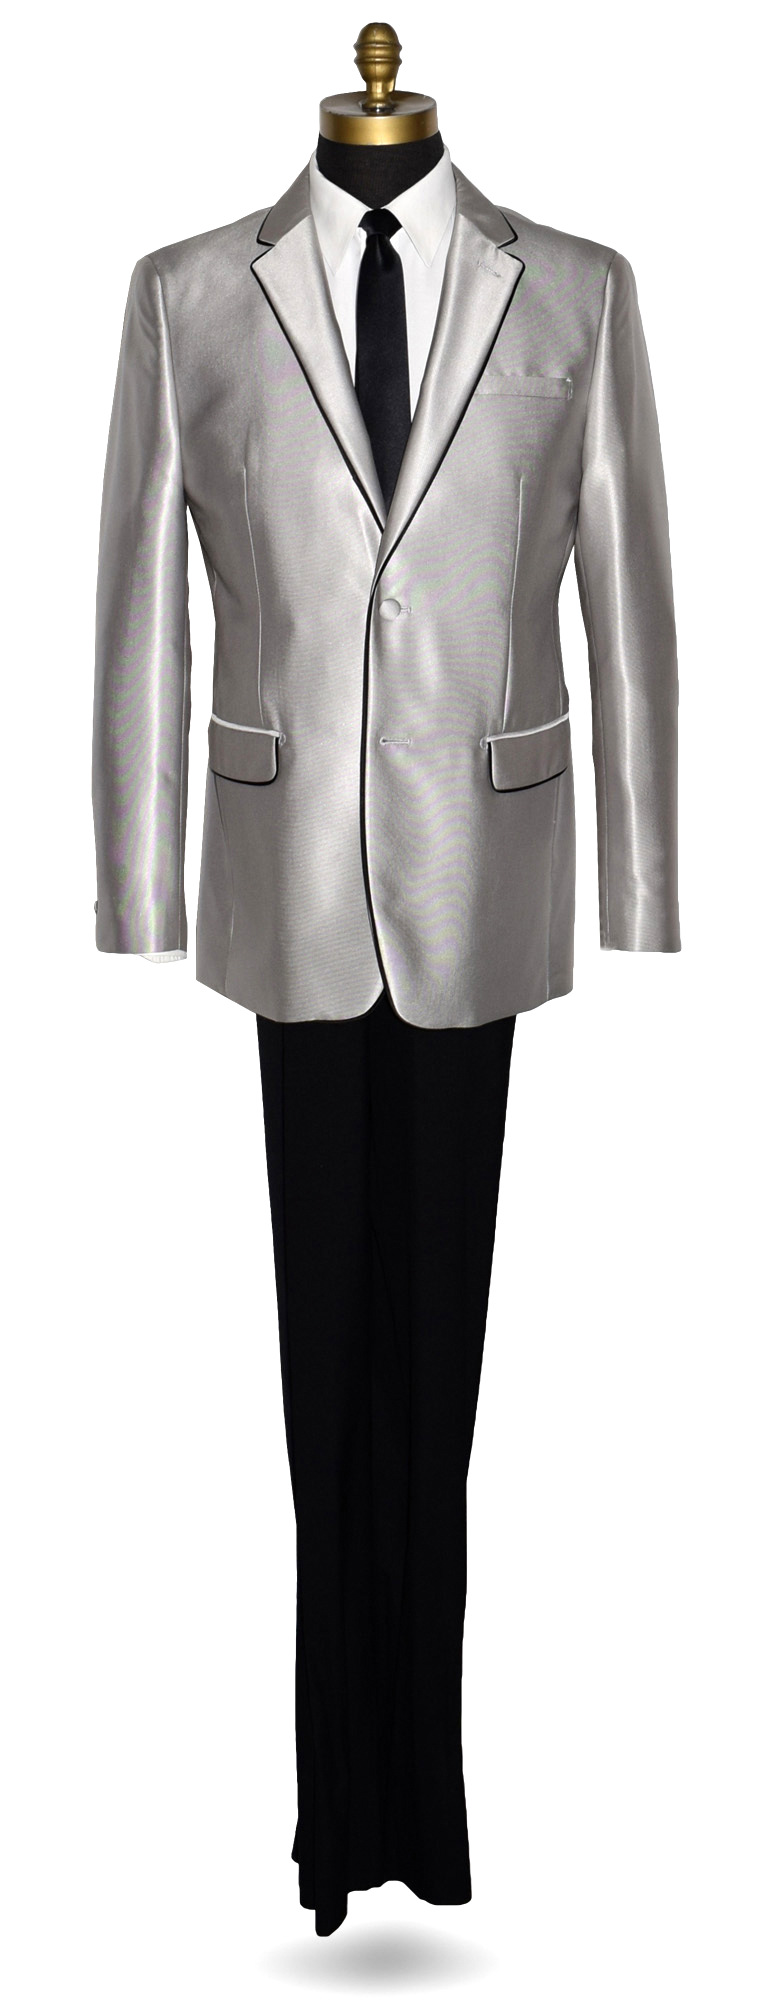 PLATINUM TUXEDO-SUIT COAT AND PANTS SET ONLY